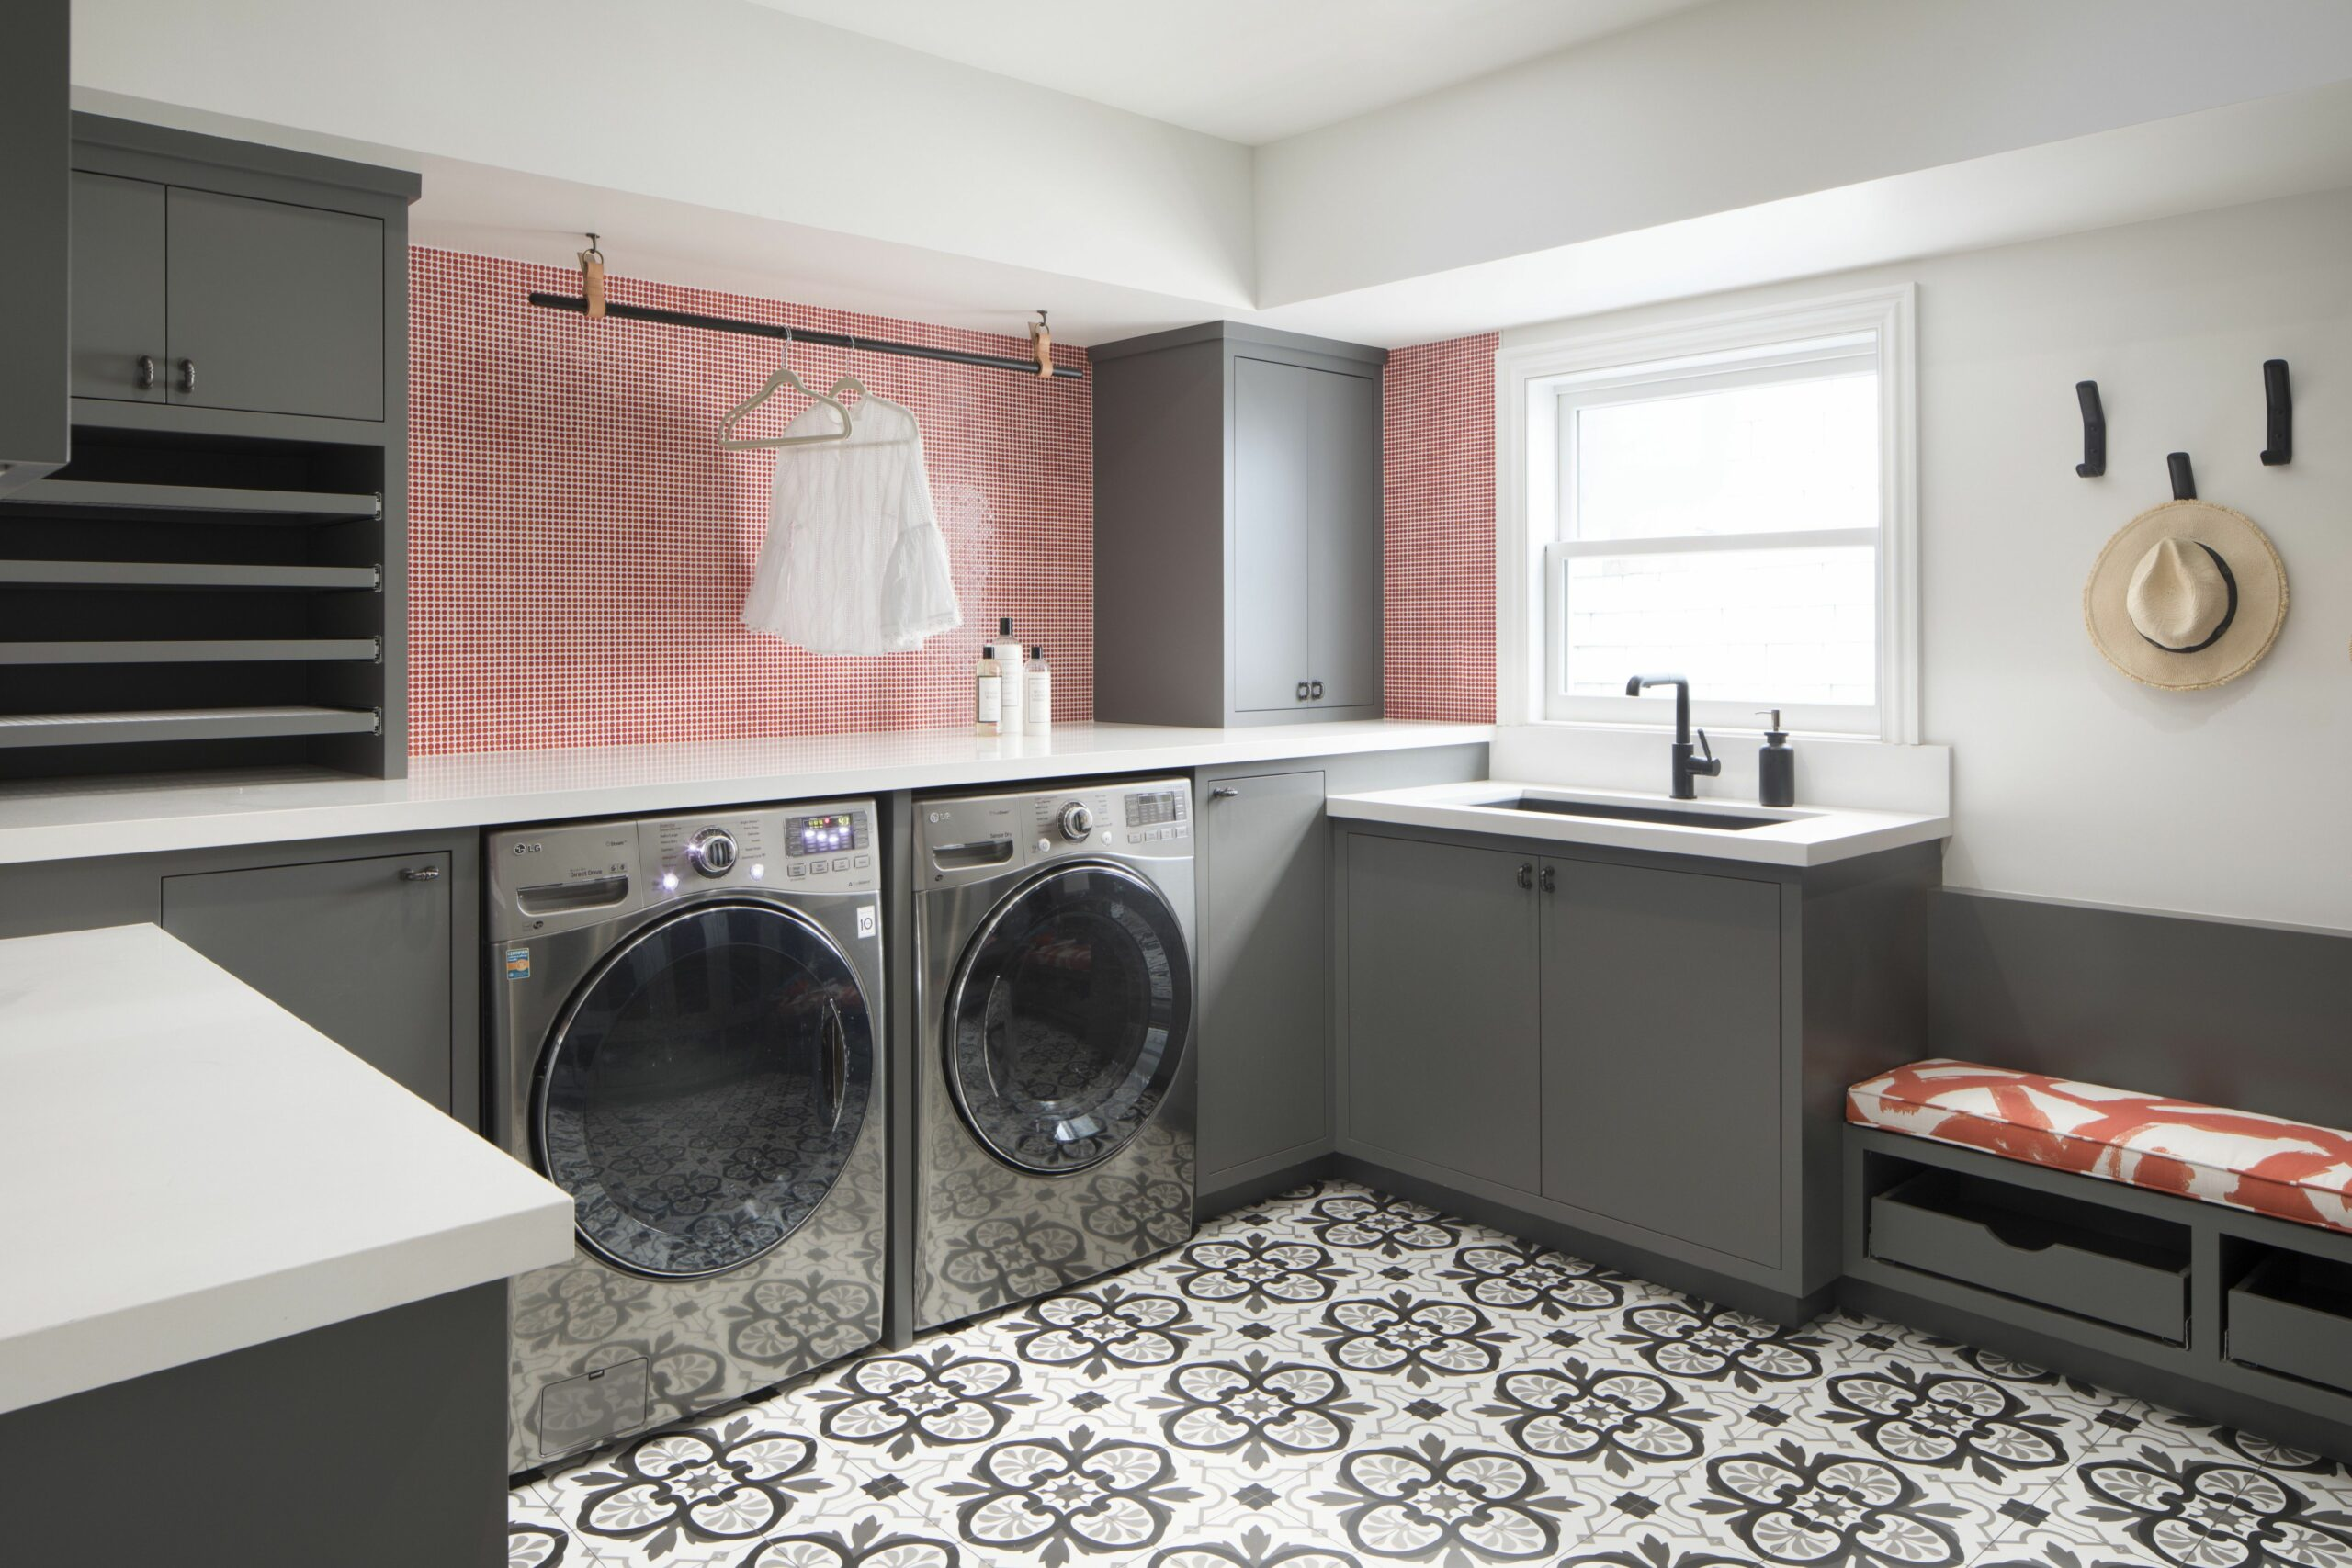 9 Best Laundry Rooms - Lovely & Functional Laundry Room Ideas